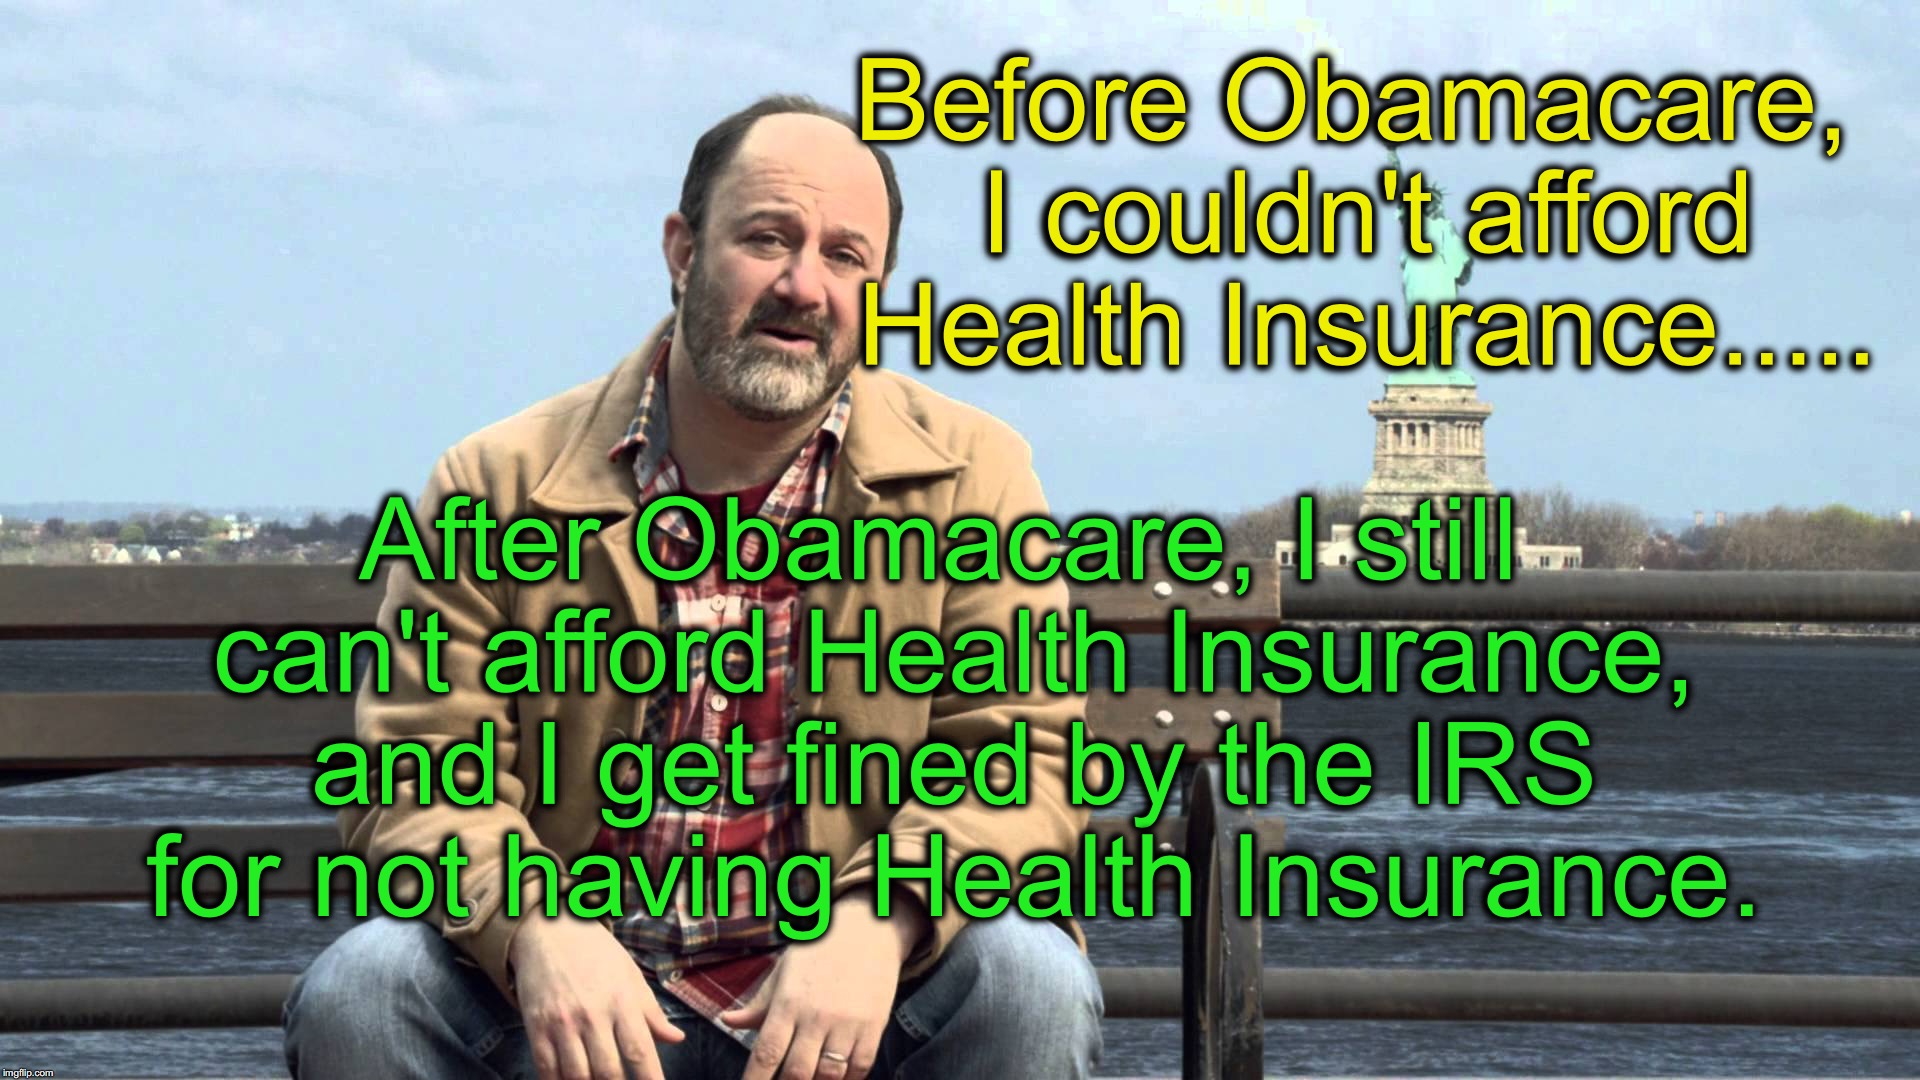 statue of liberty mutual | Before Obamacare, I couldn't afford Health Insurance..... After Obamacare, I still can't afford Health Insurance, and I get fined by the IRS | image tagged in statue of liberty mutual | made w/ Imgflip meme maker